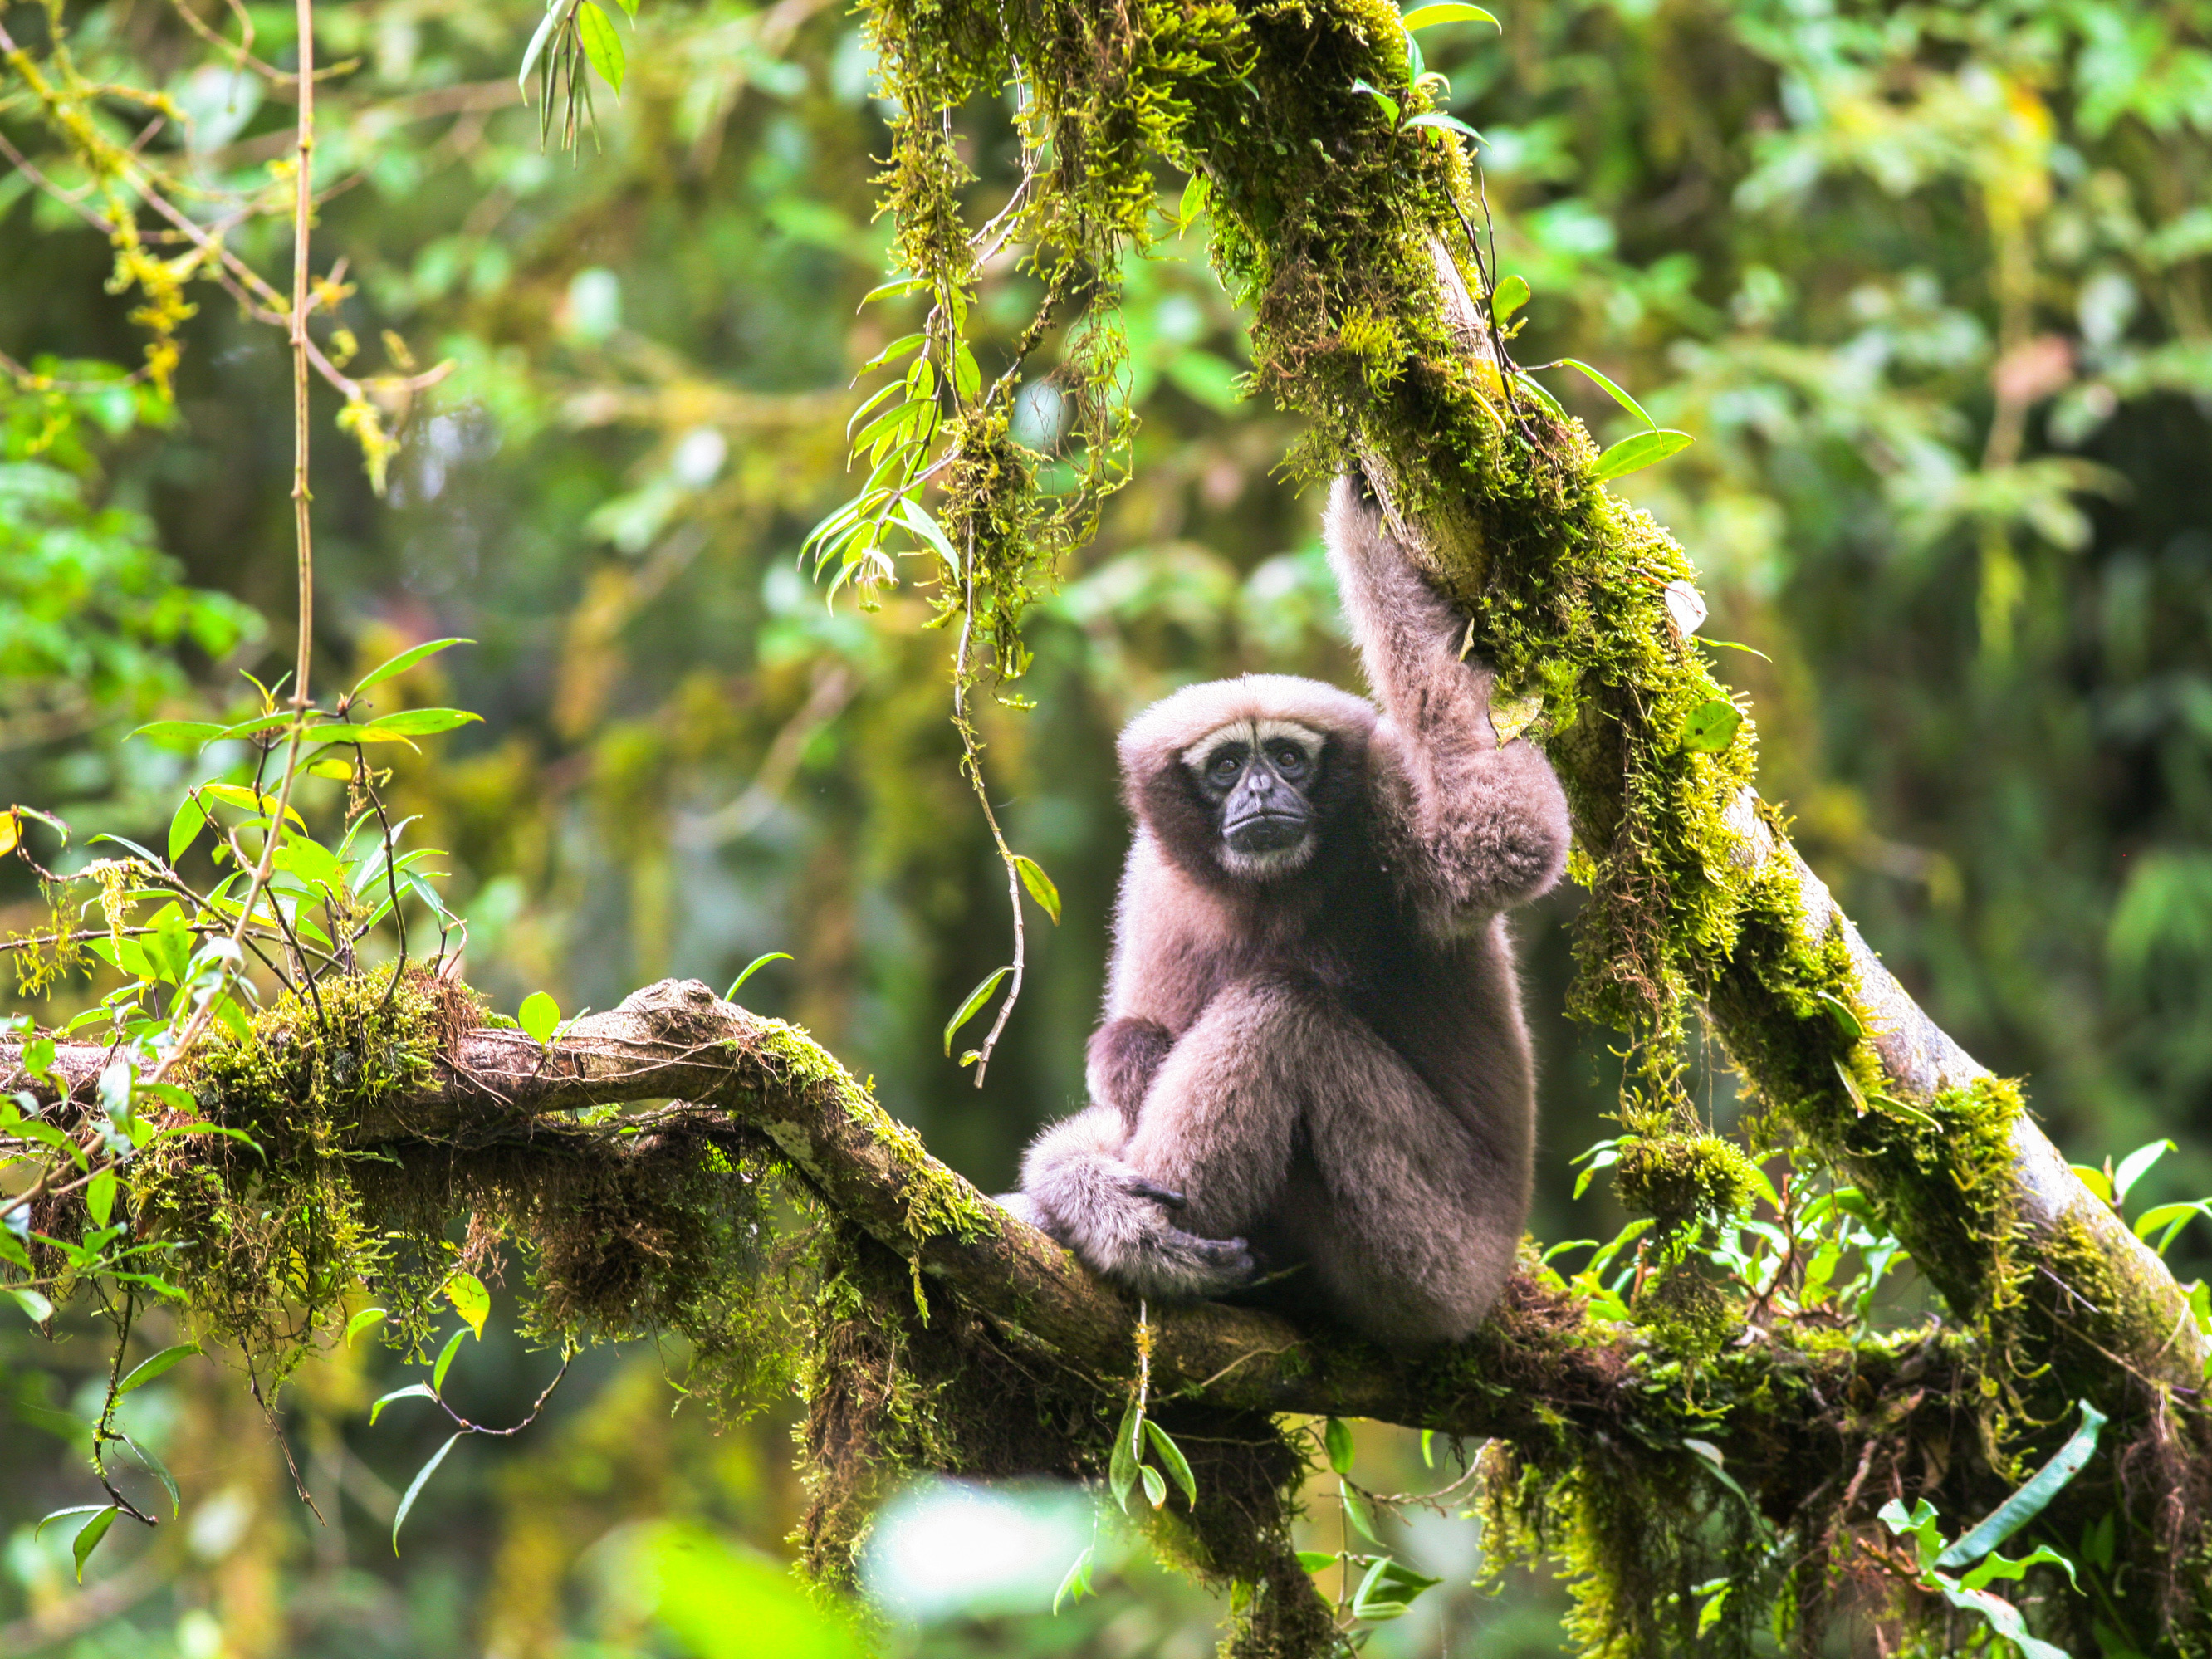 'Star Wars gibbon' unveiled as a new primate species